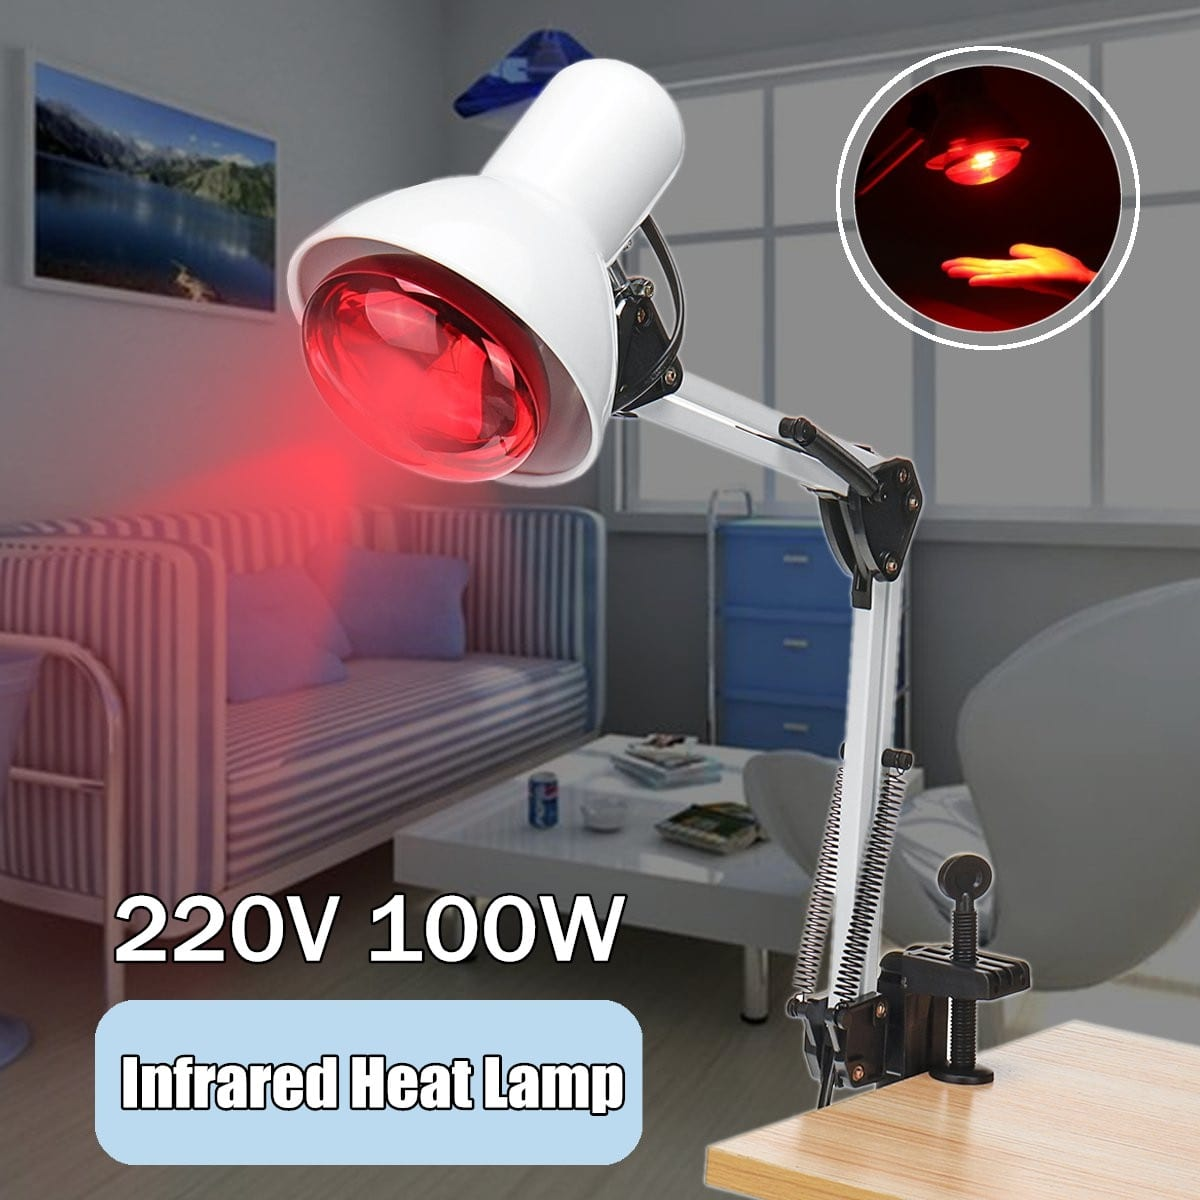 Infrared Therapeutic Pain Relief Heat Lamp Product Mafia